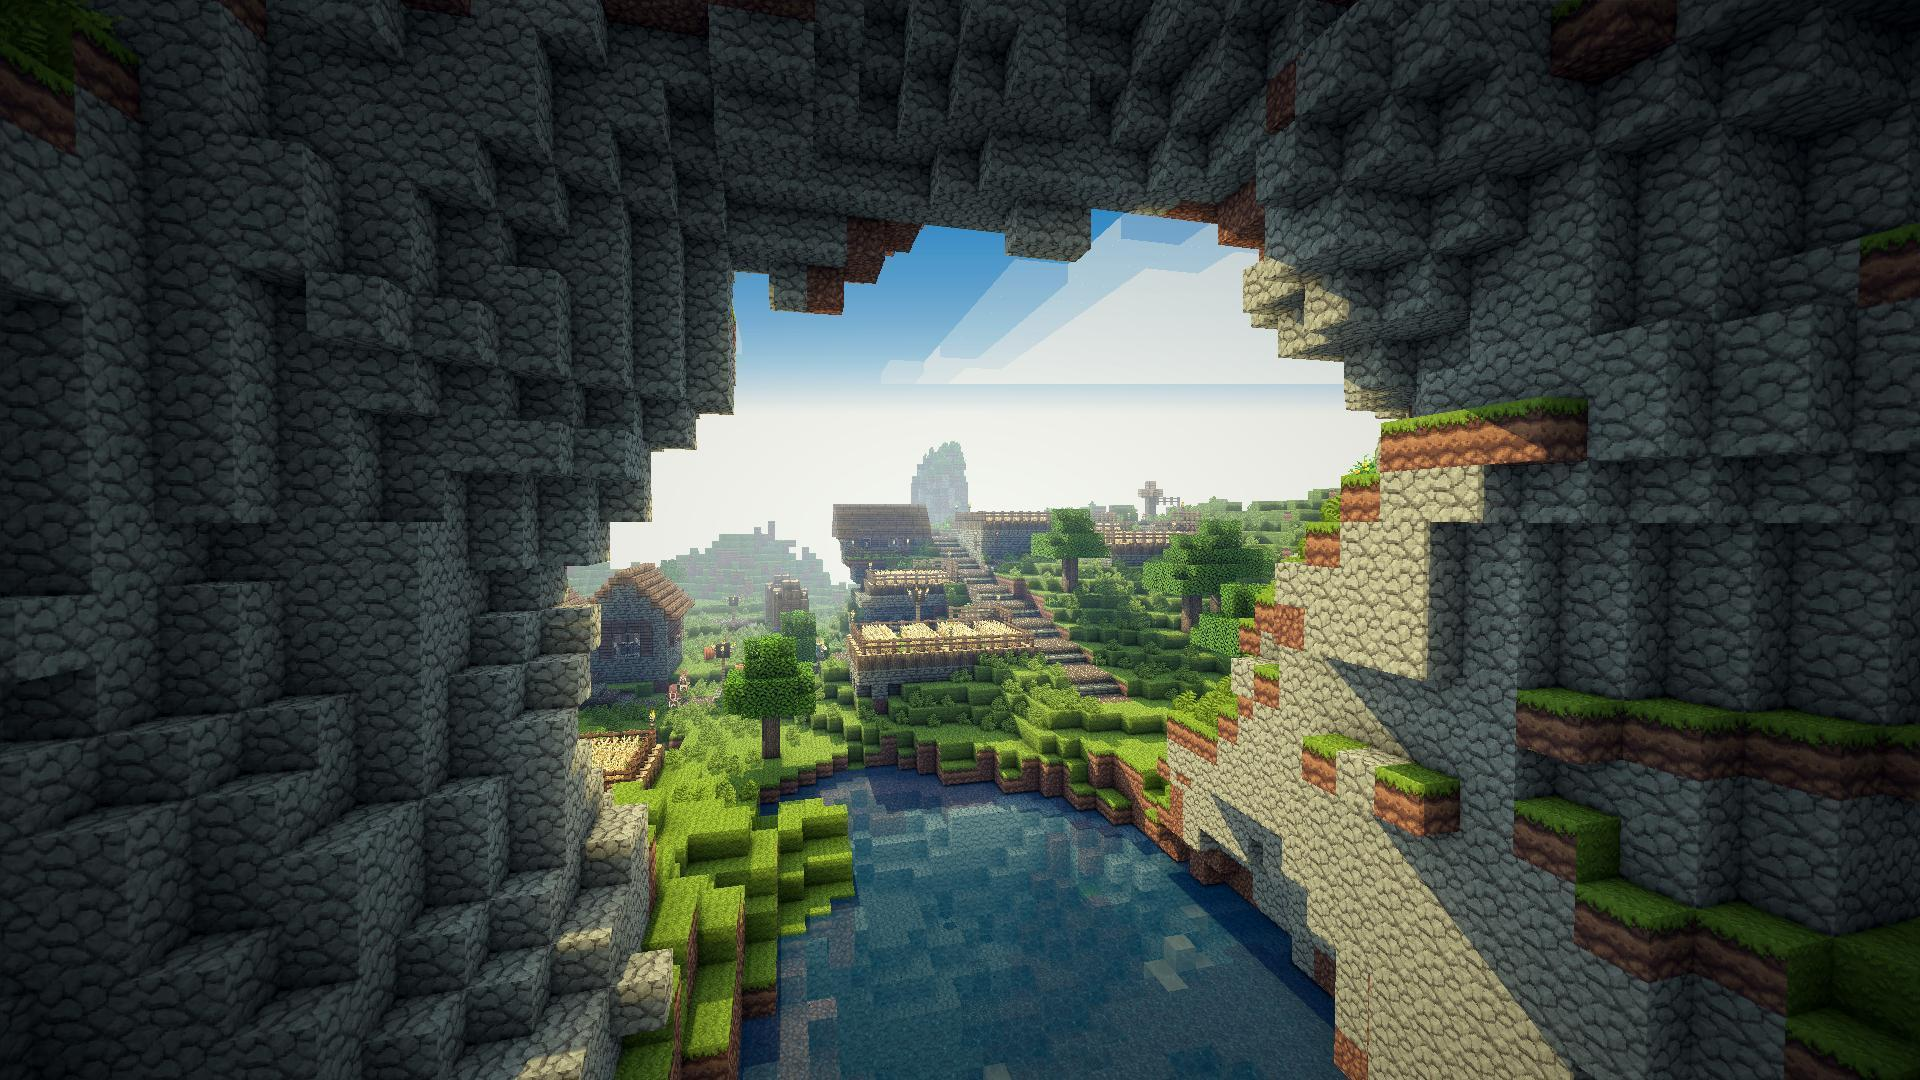 Live 3d Hd Wallpapers For Laptop Minecraft Wallpapers